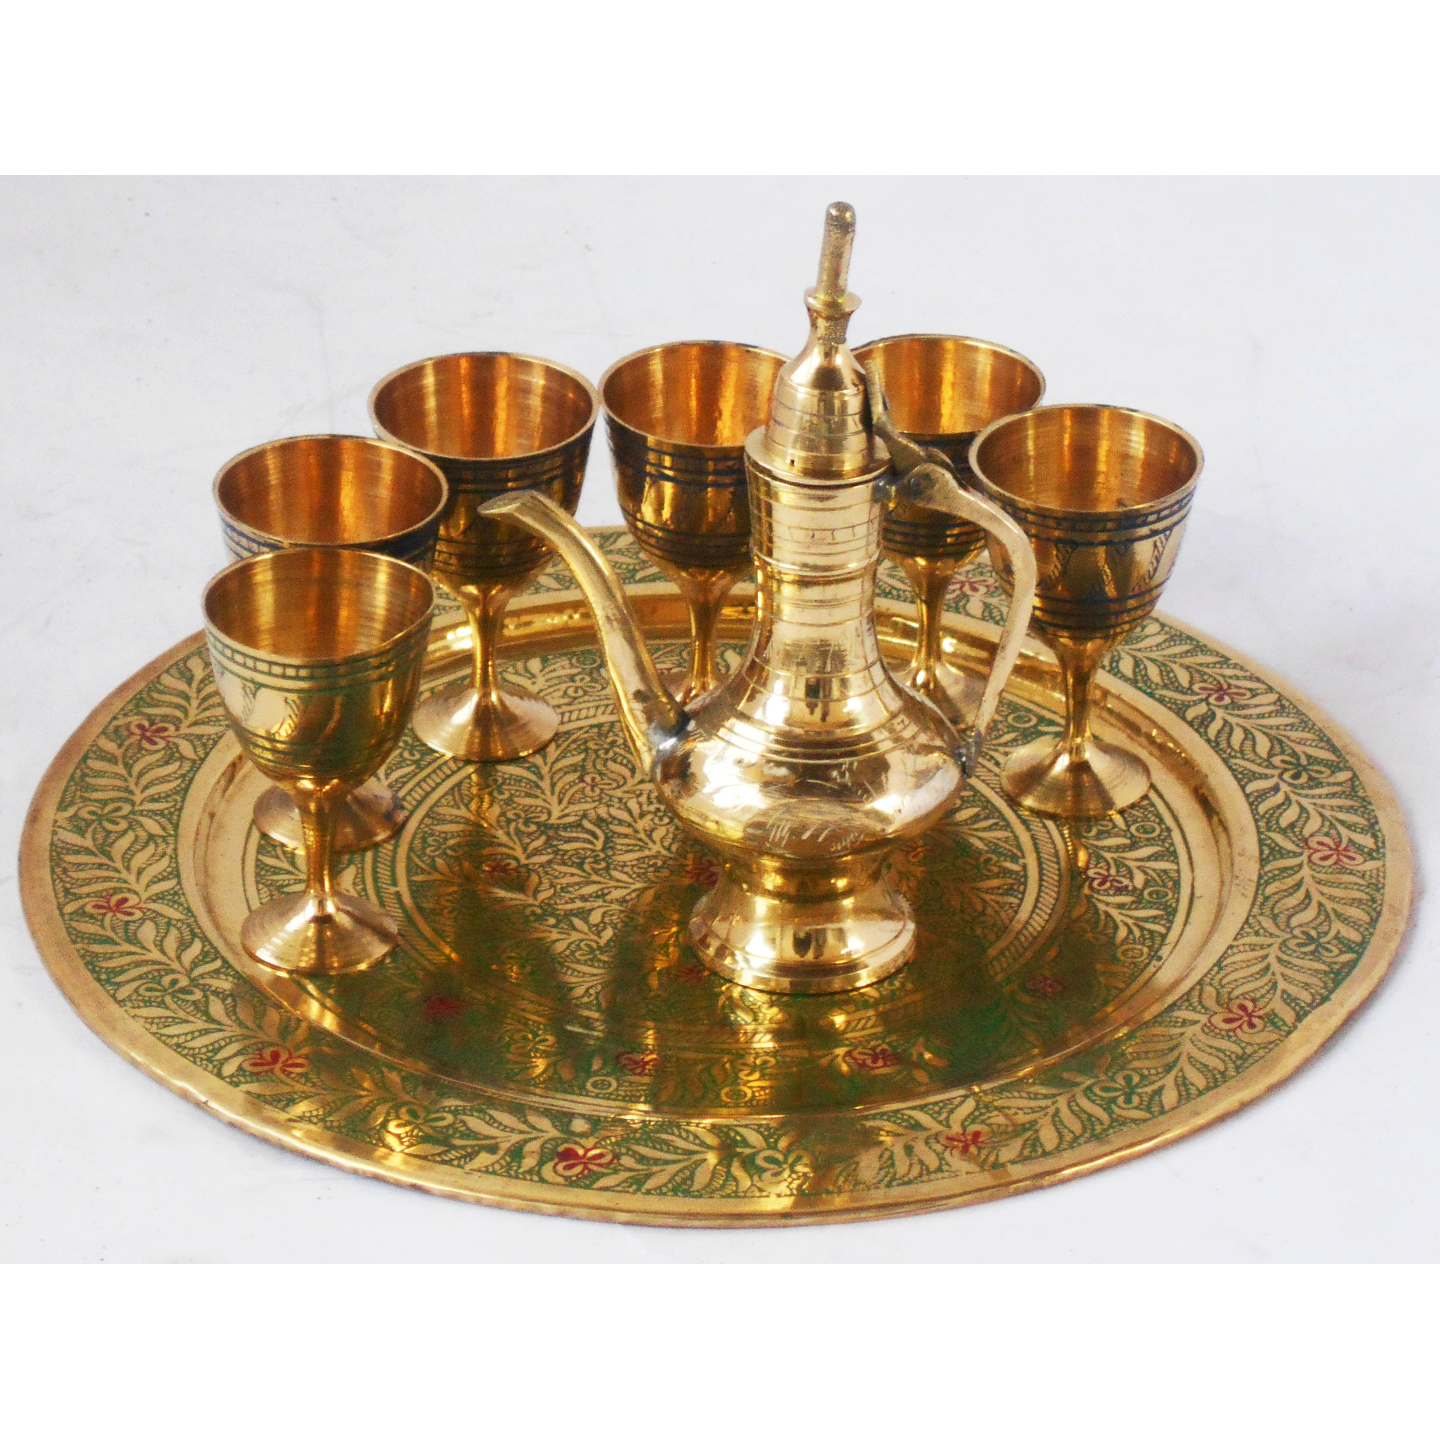 Brass Wine Set With Six Glass One Surahi MIniature Toy for Children Playing Z346 C